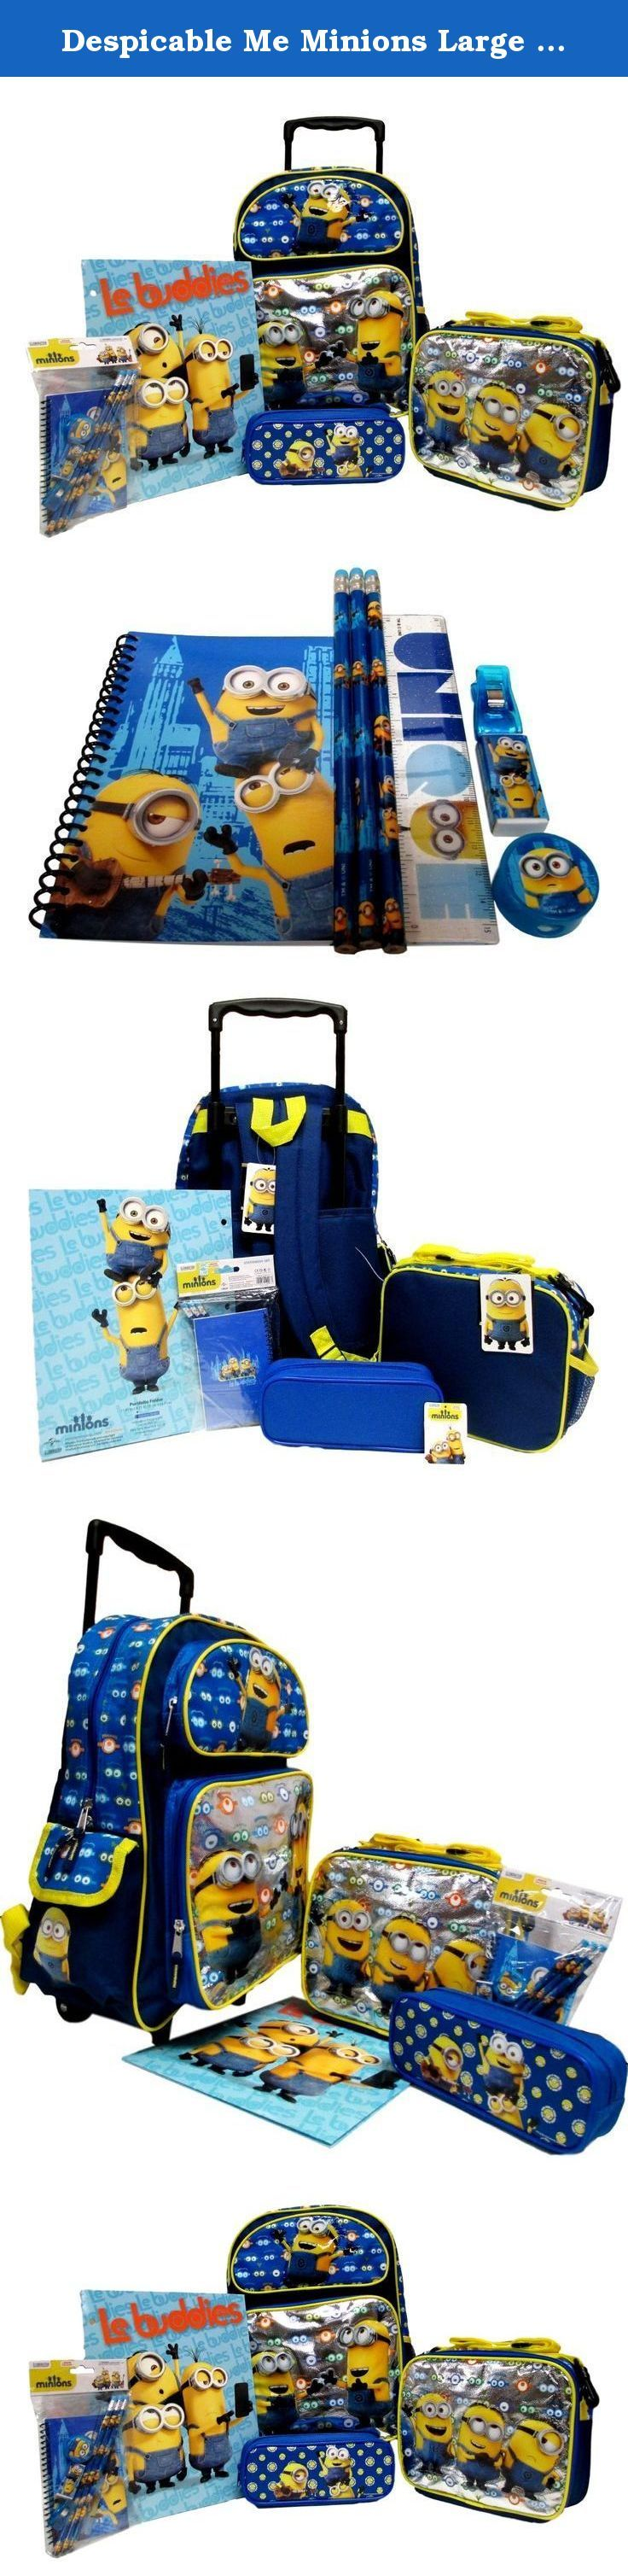 "Despicable Me Minions Large 16"" Rolling Backpack, Lunch Box, Pencil Pouch & Stationery Set. Despicable Me Rolling Backpack Set!. Large 16"" Rolling Backpack. Lunch Box. Pencil Case, Stationery Set and Folder. This complete set is offered by seller Bag2School."